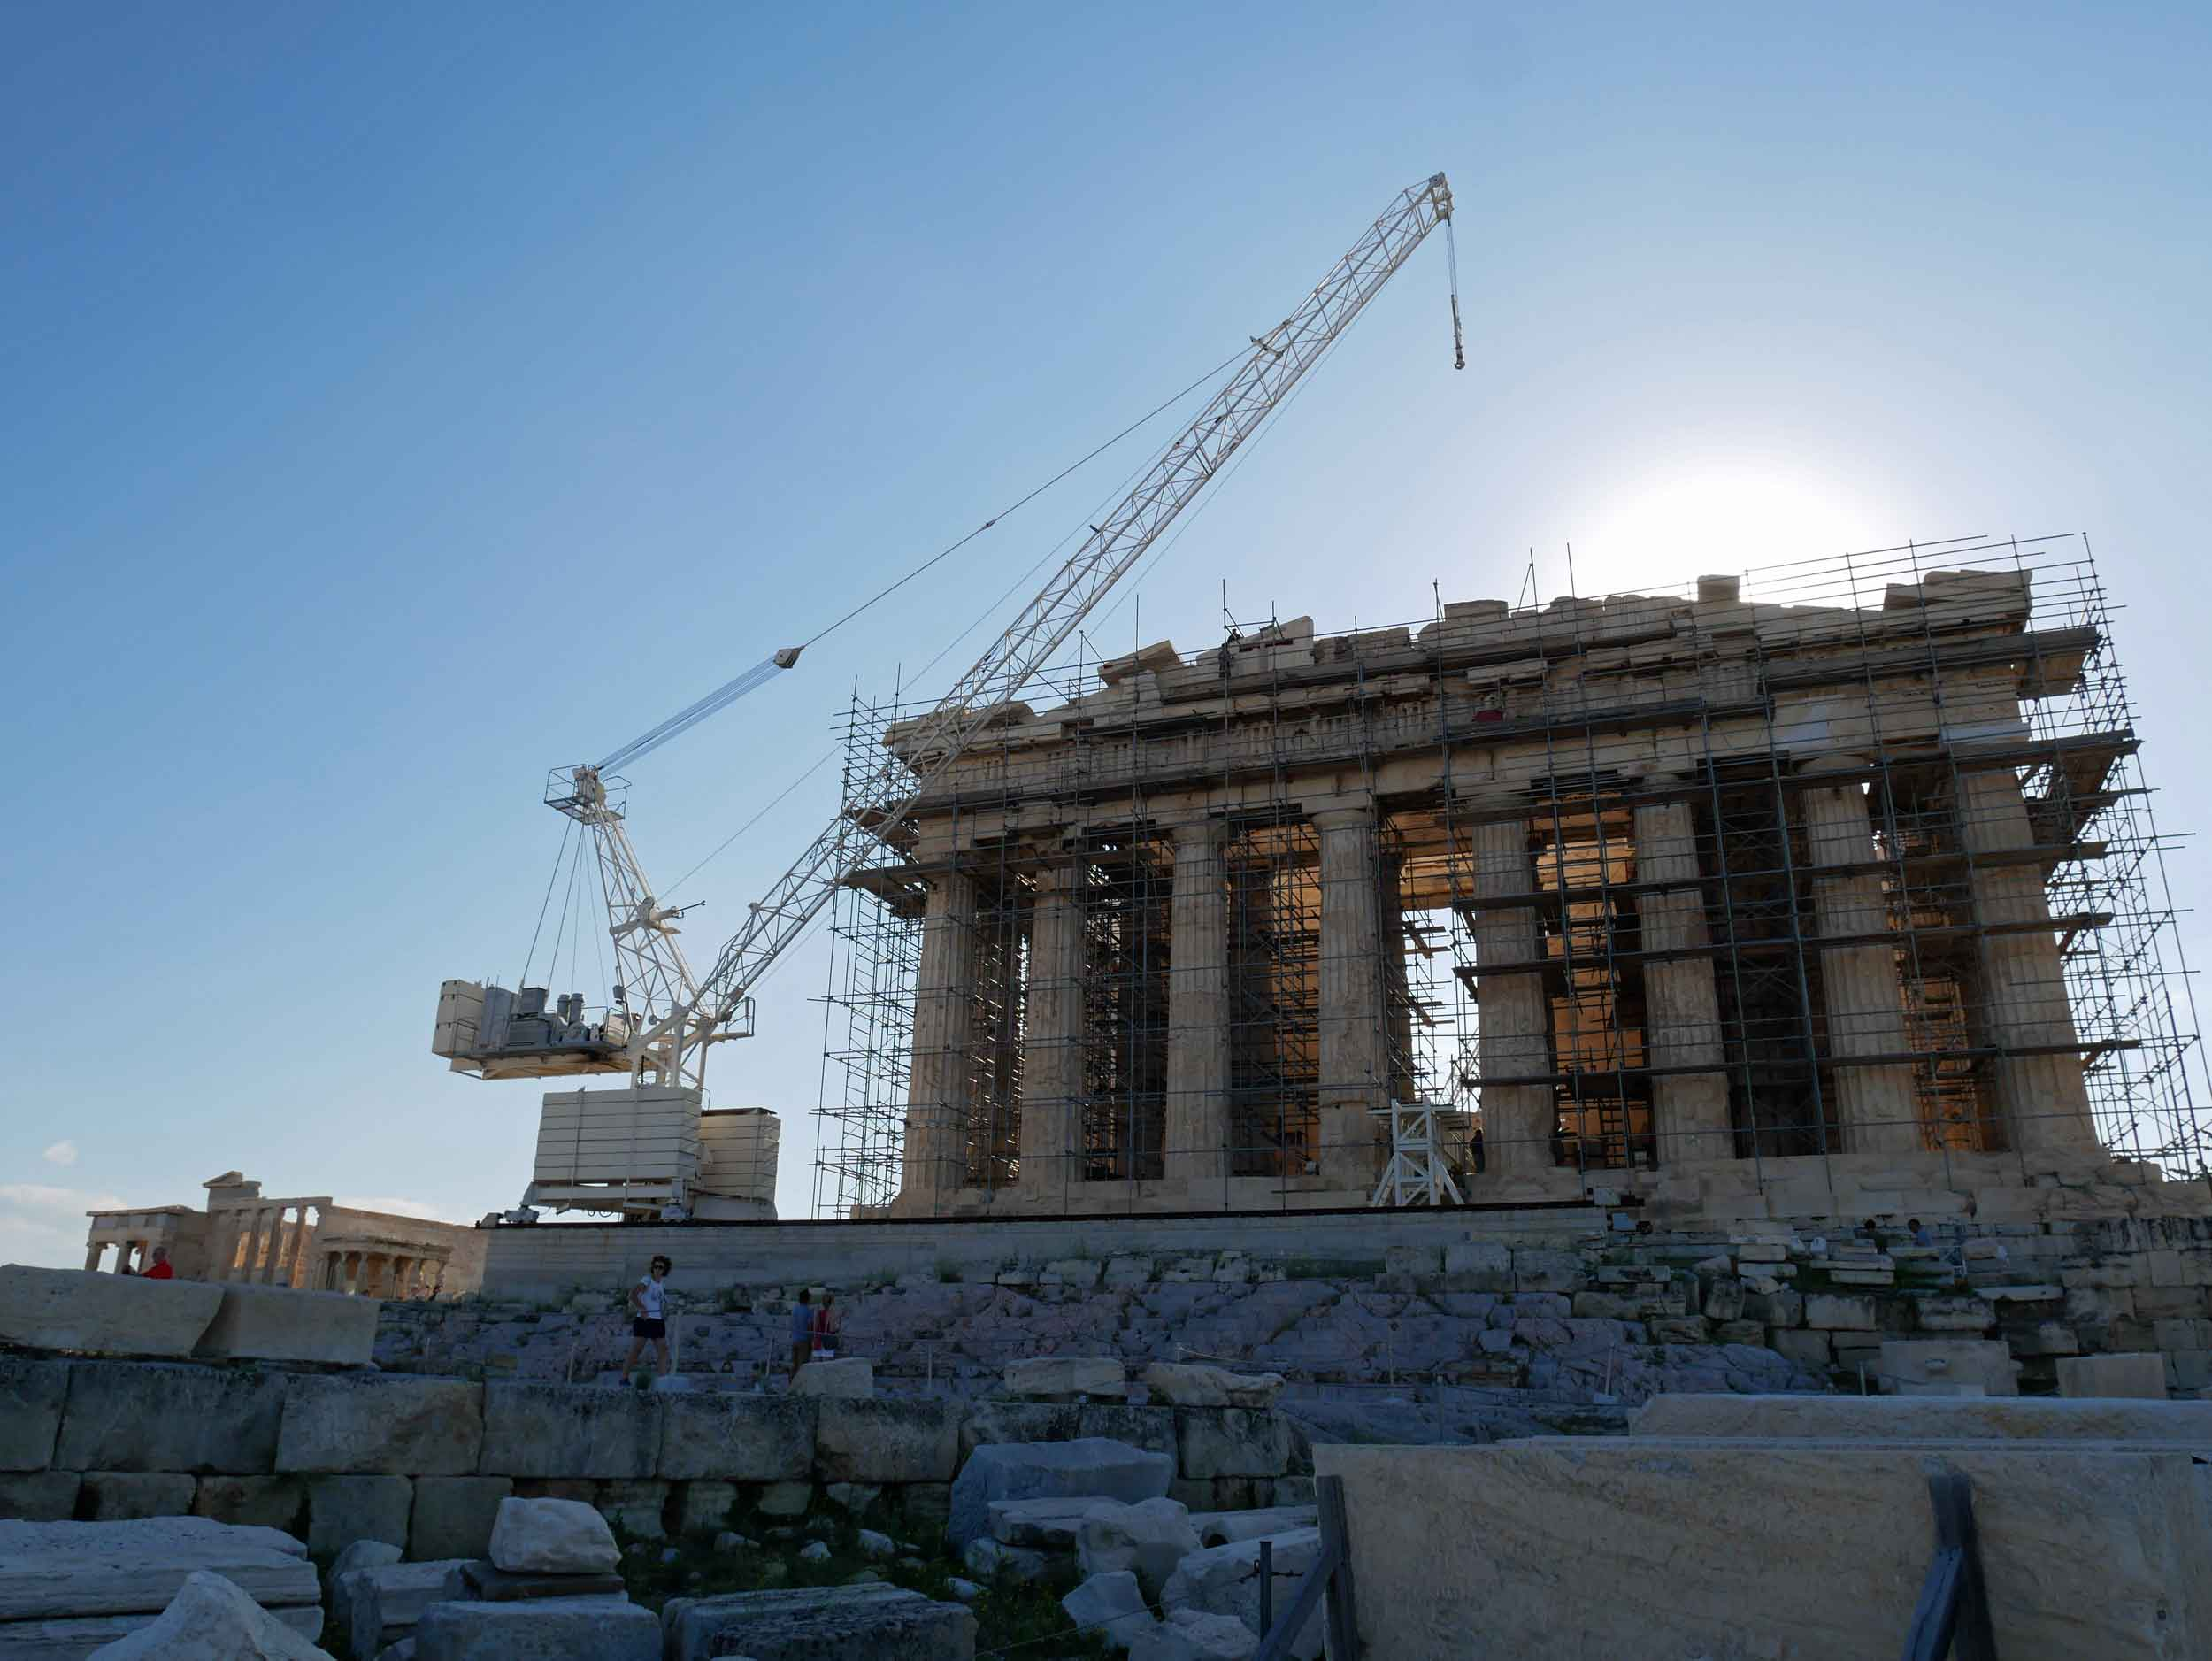 The erection of the Parthenon took nine years, however, has been in restoration by the Greek government since 1975.